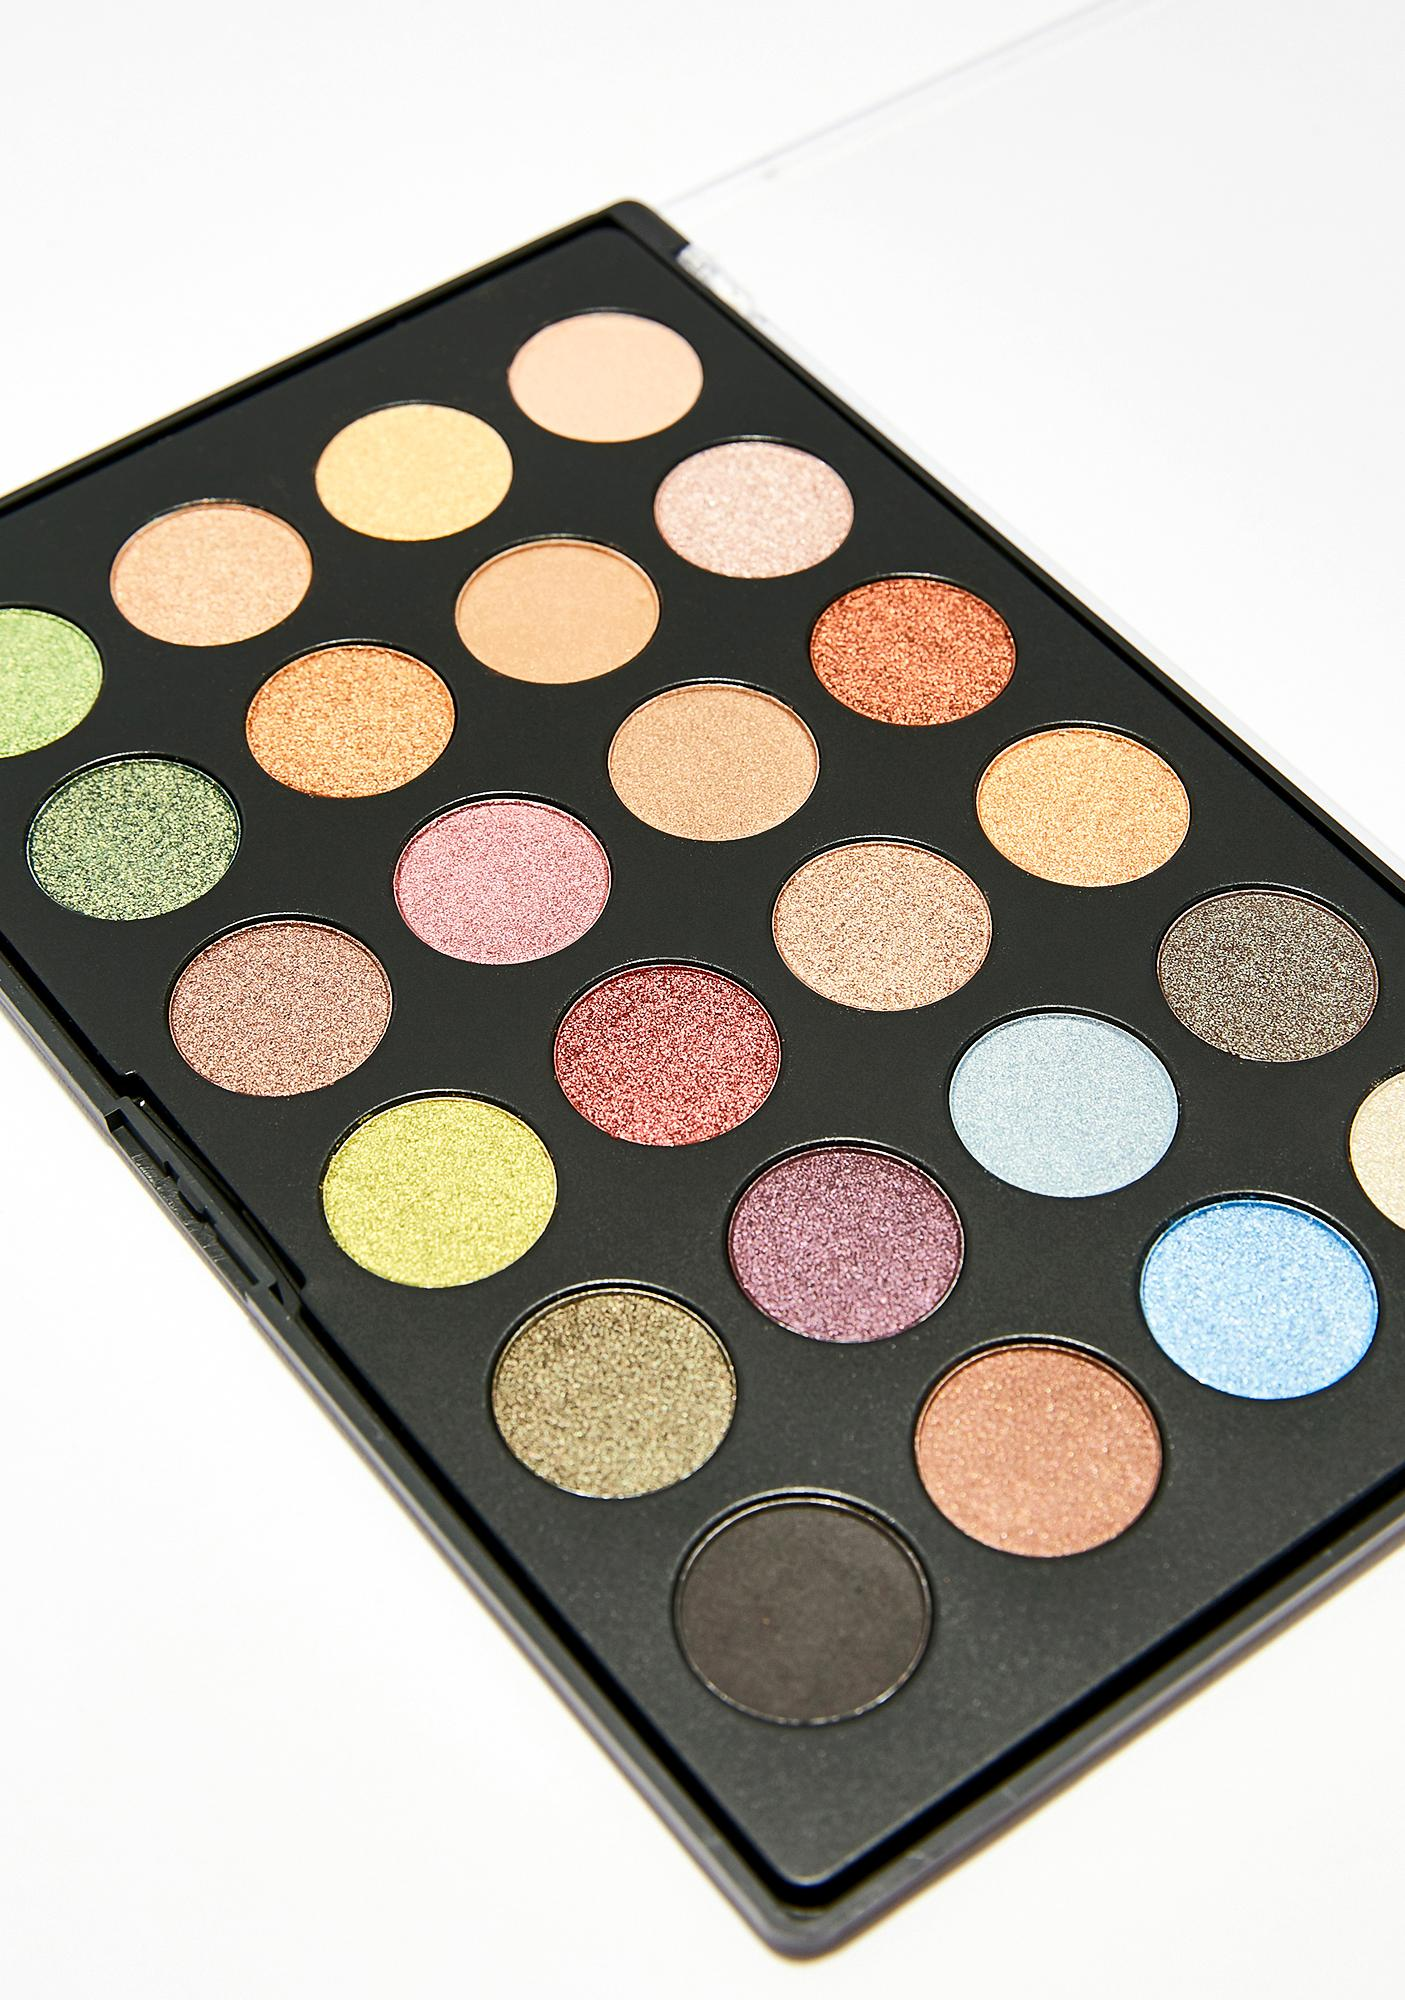 Rude Cosmetics Enchanted Peekaboo Pixies Eyeshadow Palette